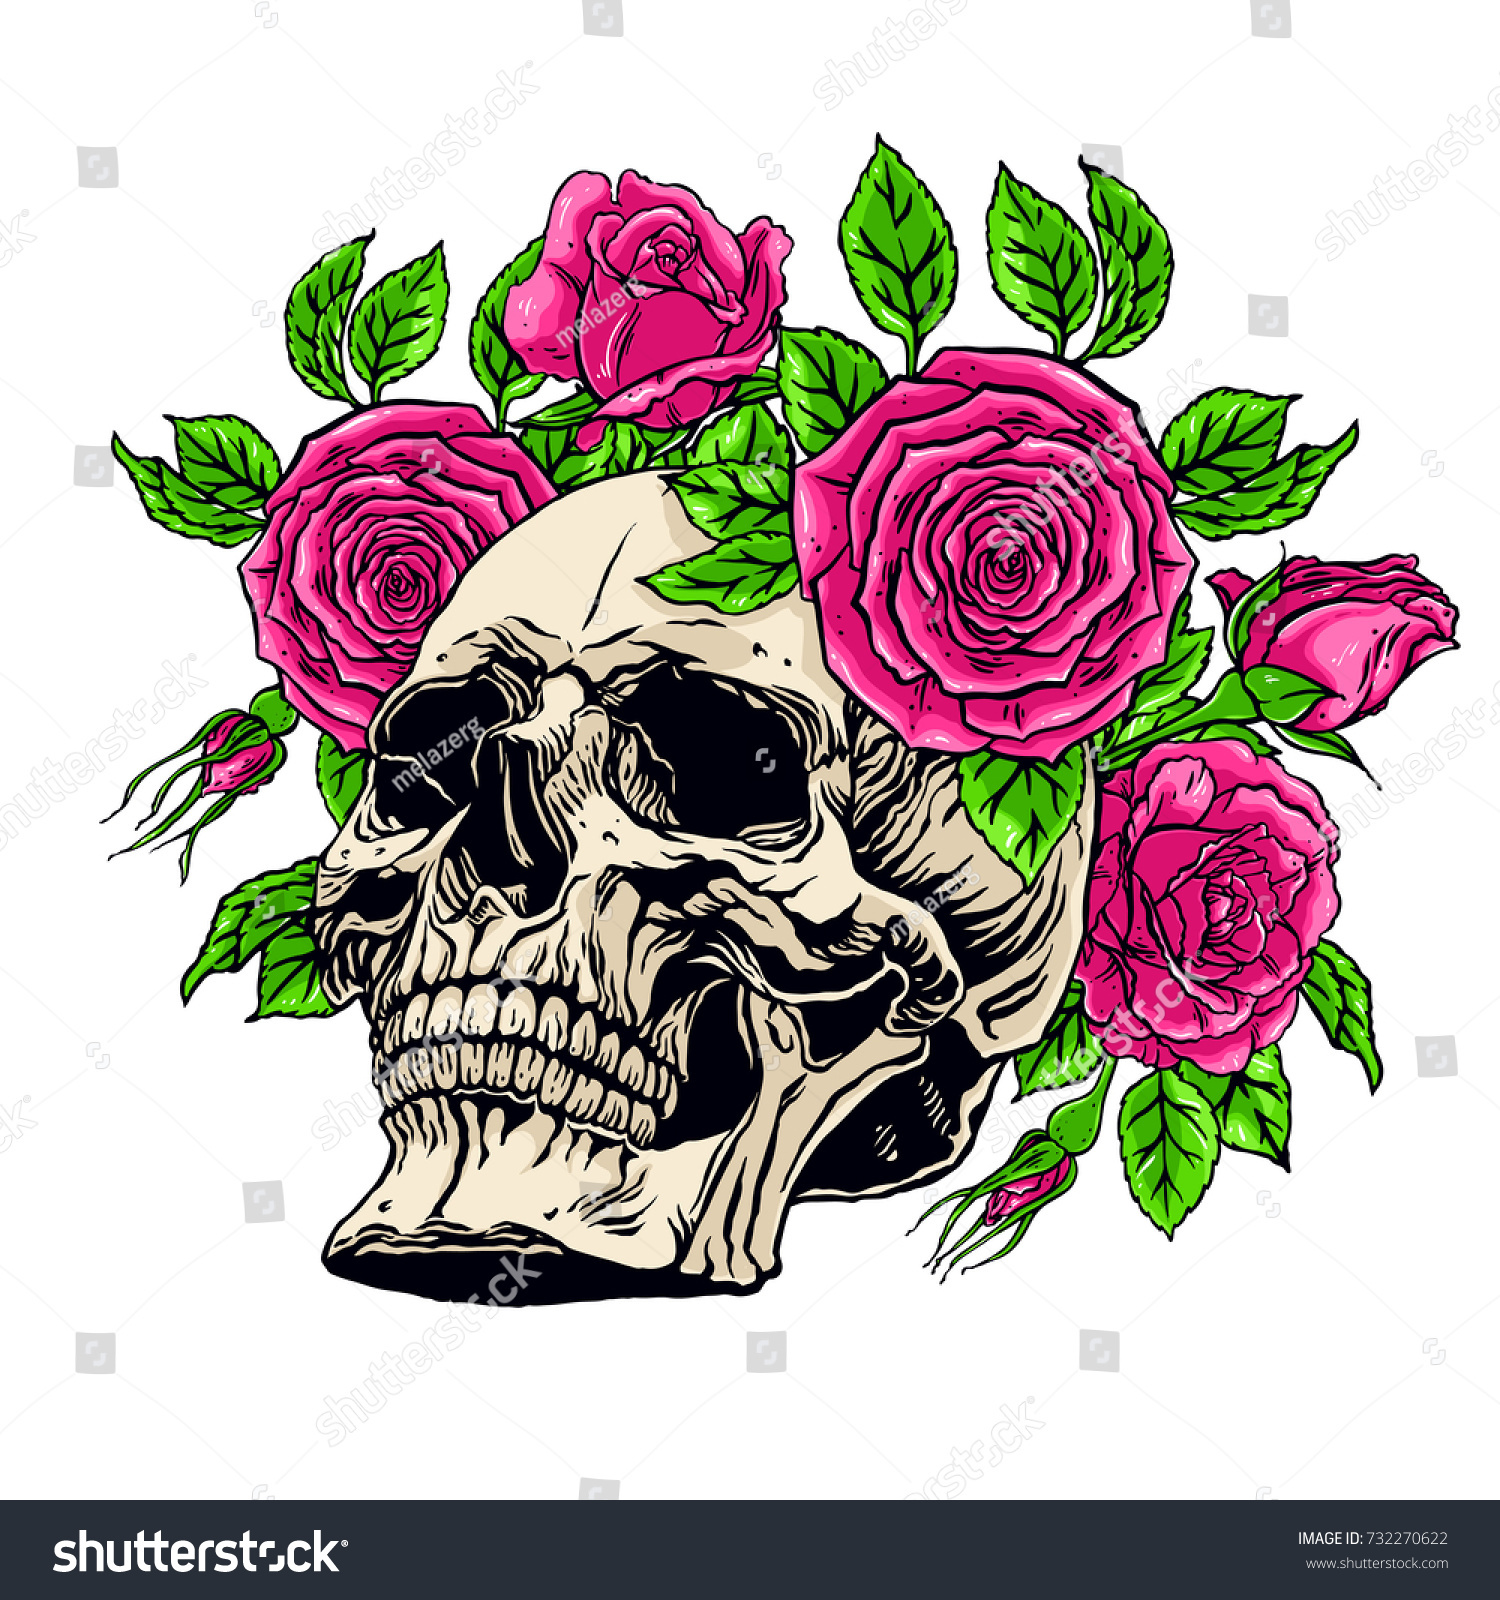 Hand Drawn Illustration Anatomy Human Skull Stock Vector Royalty